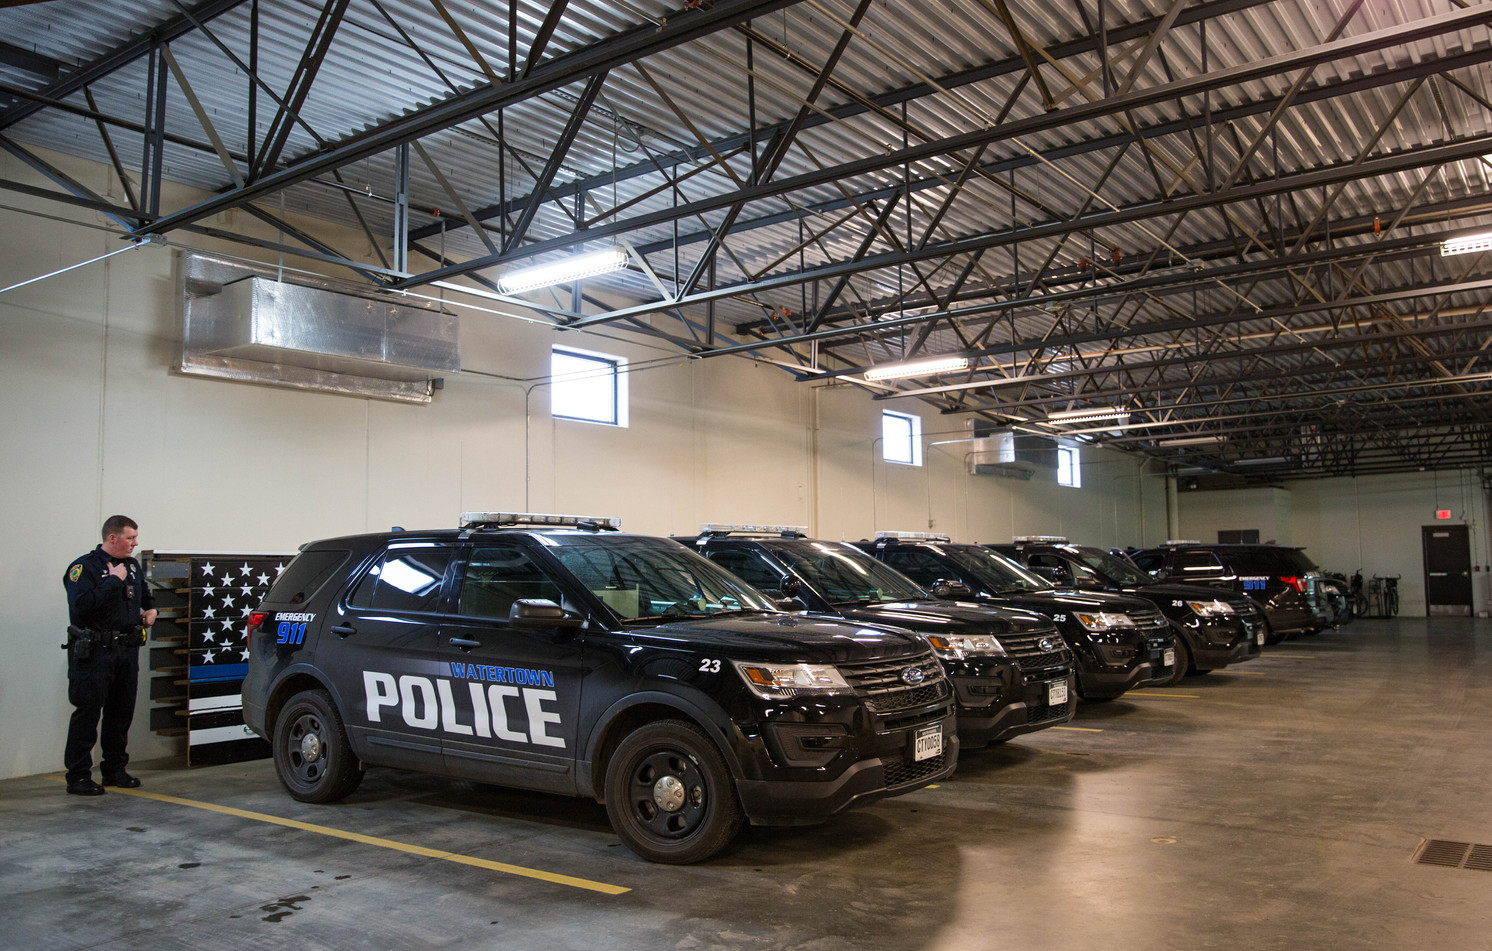 Corporal Scott Price reports in on his radio in the WPD garage before starting his shift on May 11, 2018. The department has 11 marked patrol cars, seven or eight unmarked cars, an animal control truck, a SWAT truck, a police motorcyle, a UTV and other utility vehicles. ©2018 Grace Ramey